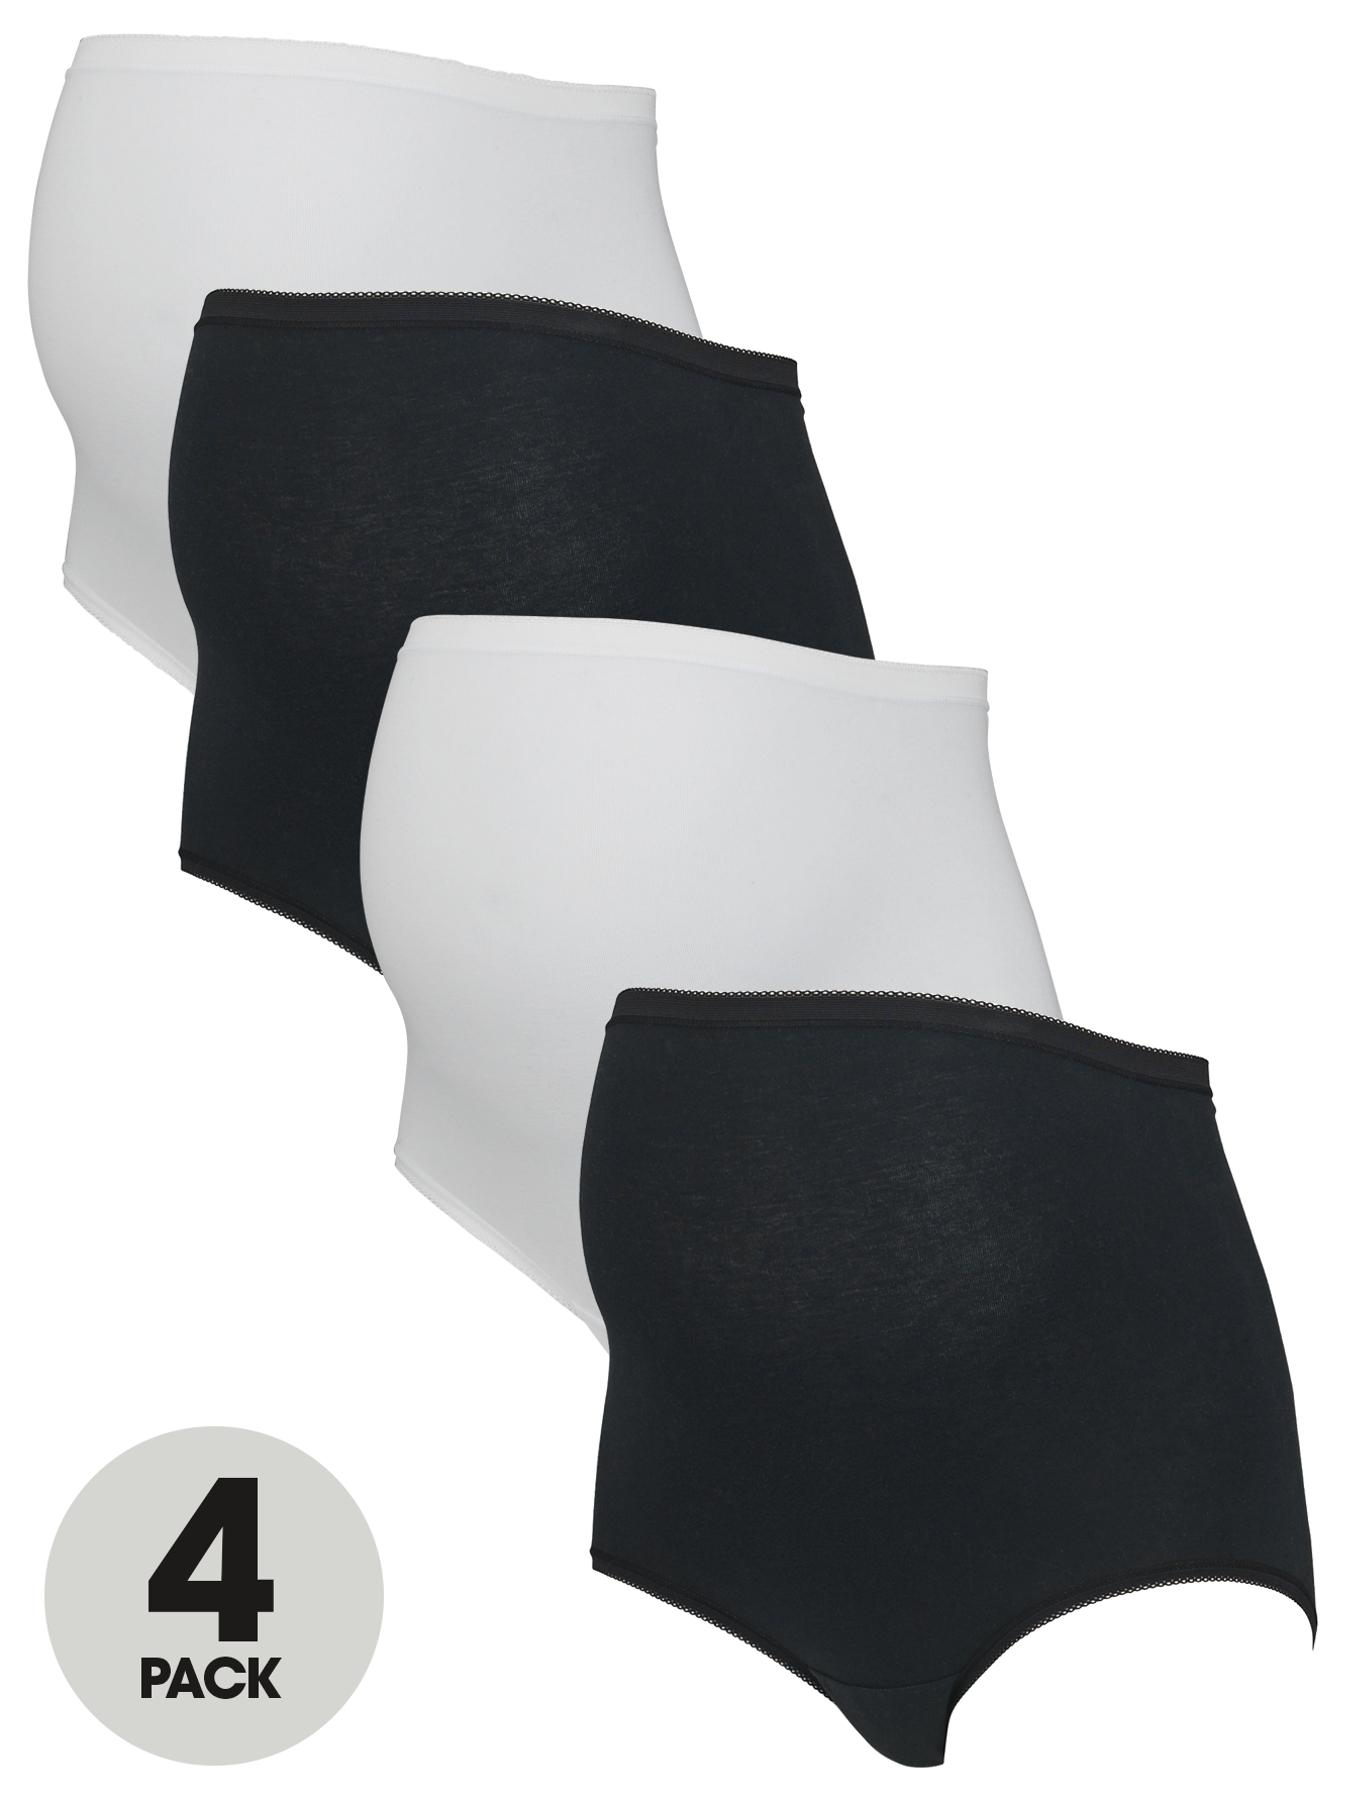 Maternity Briefs (4 Pack) 'Over The Bump', Black